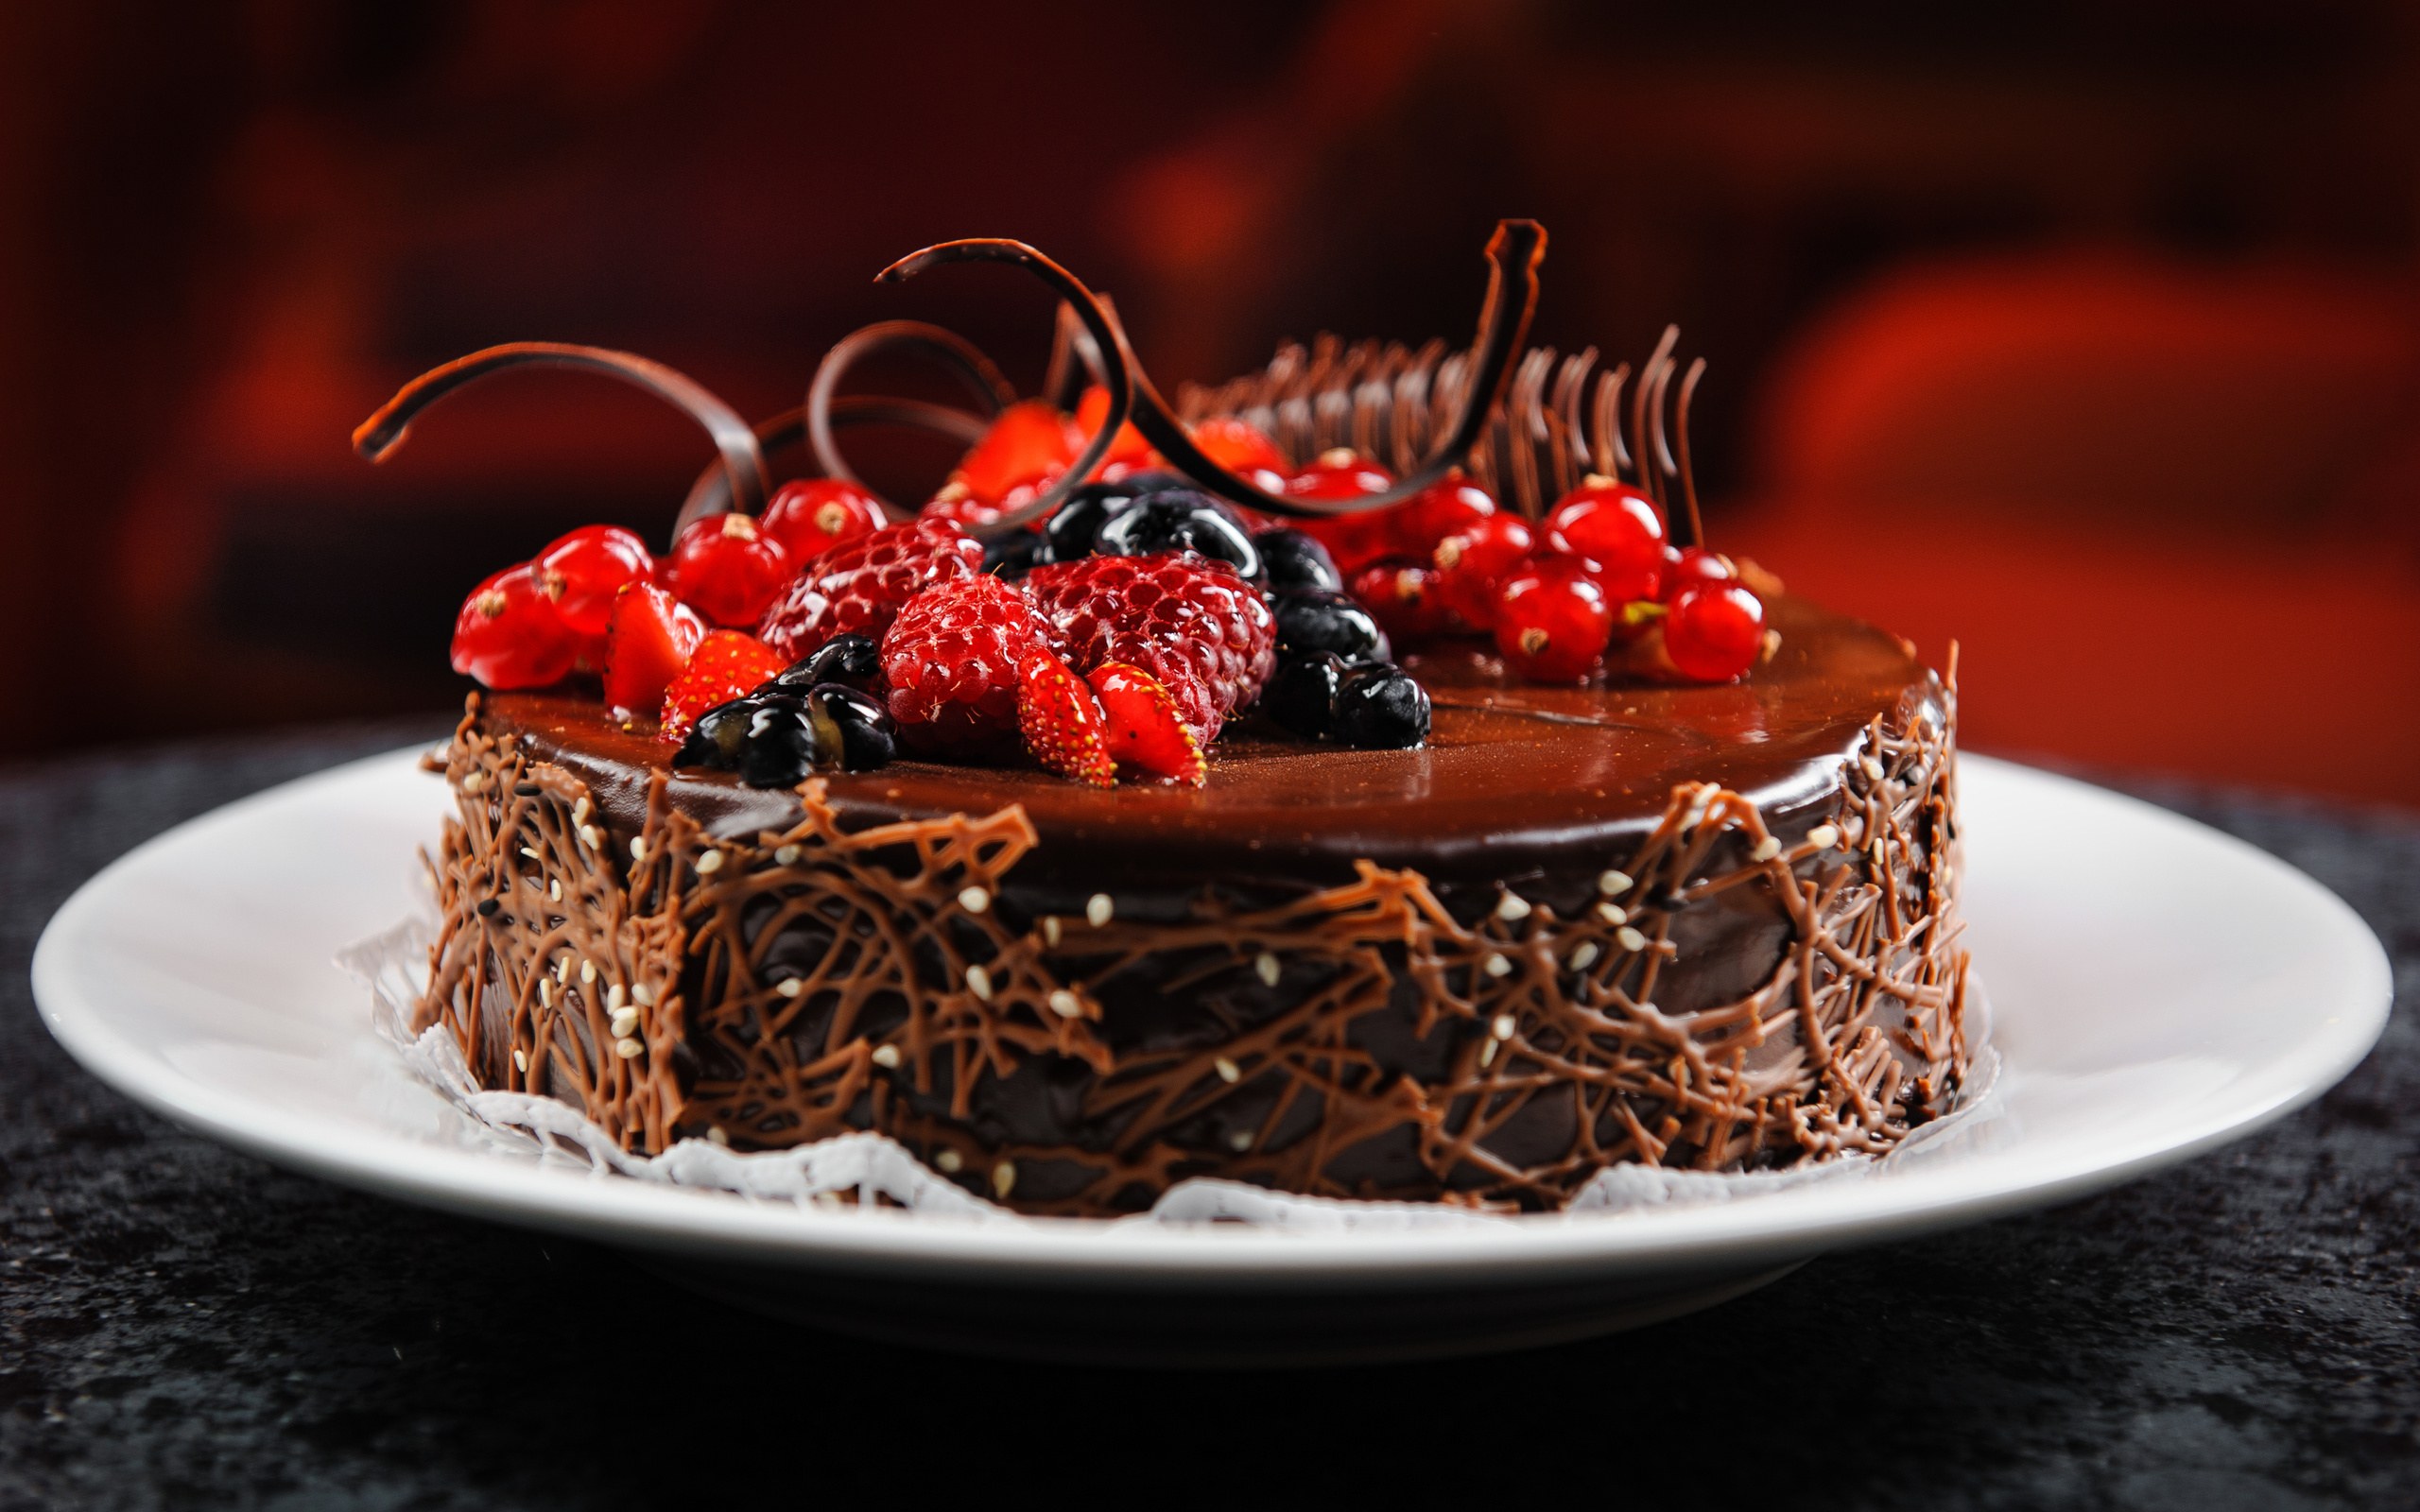 HD Wallpaper Cake